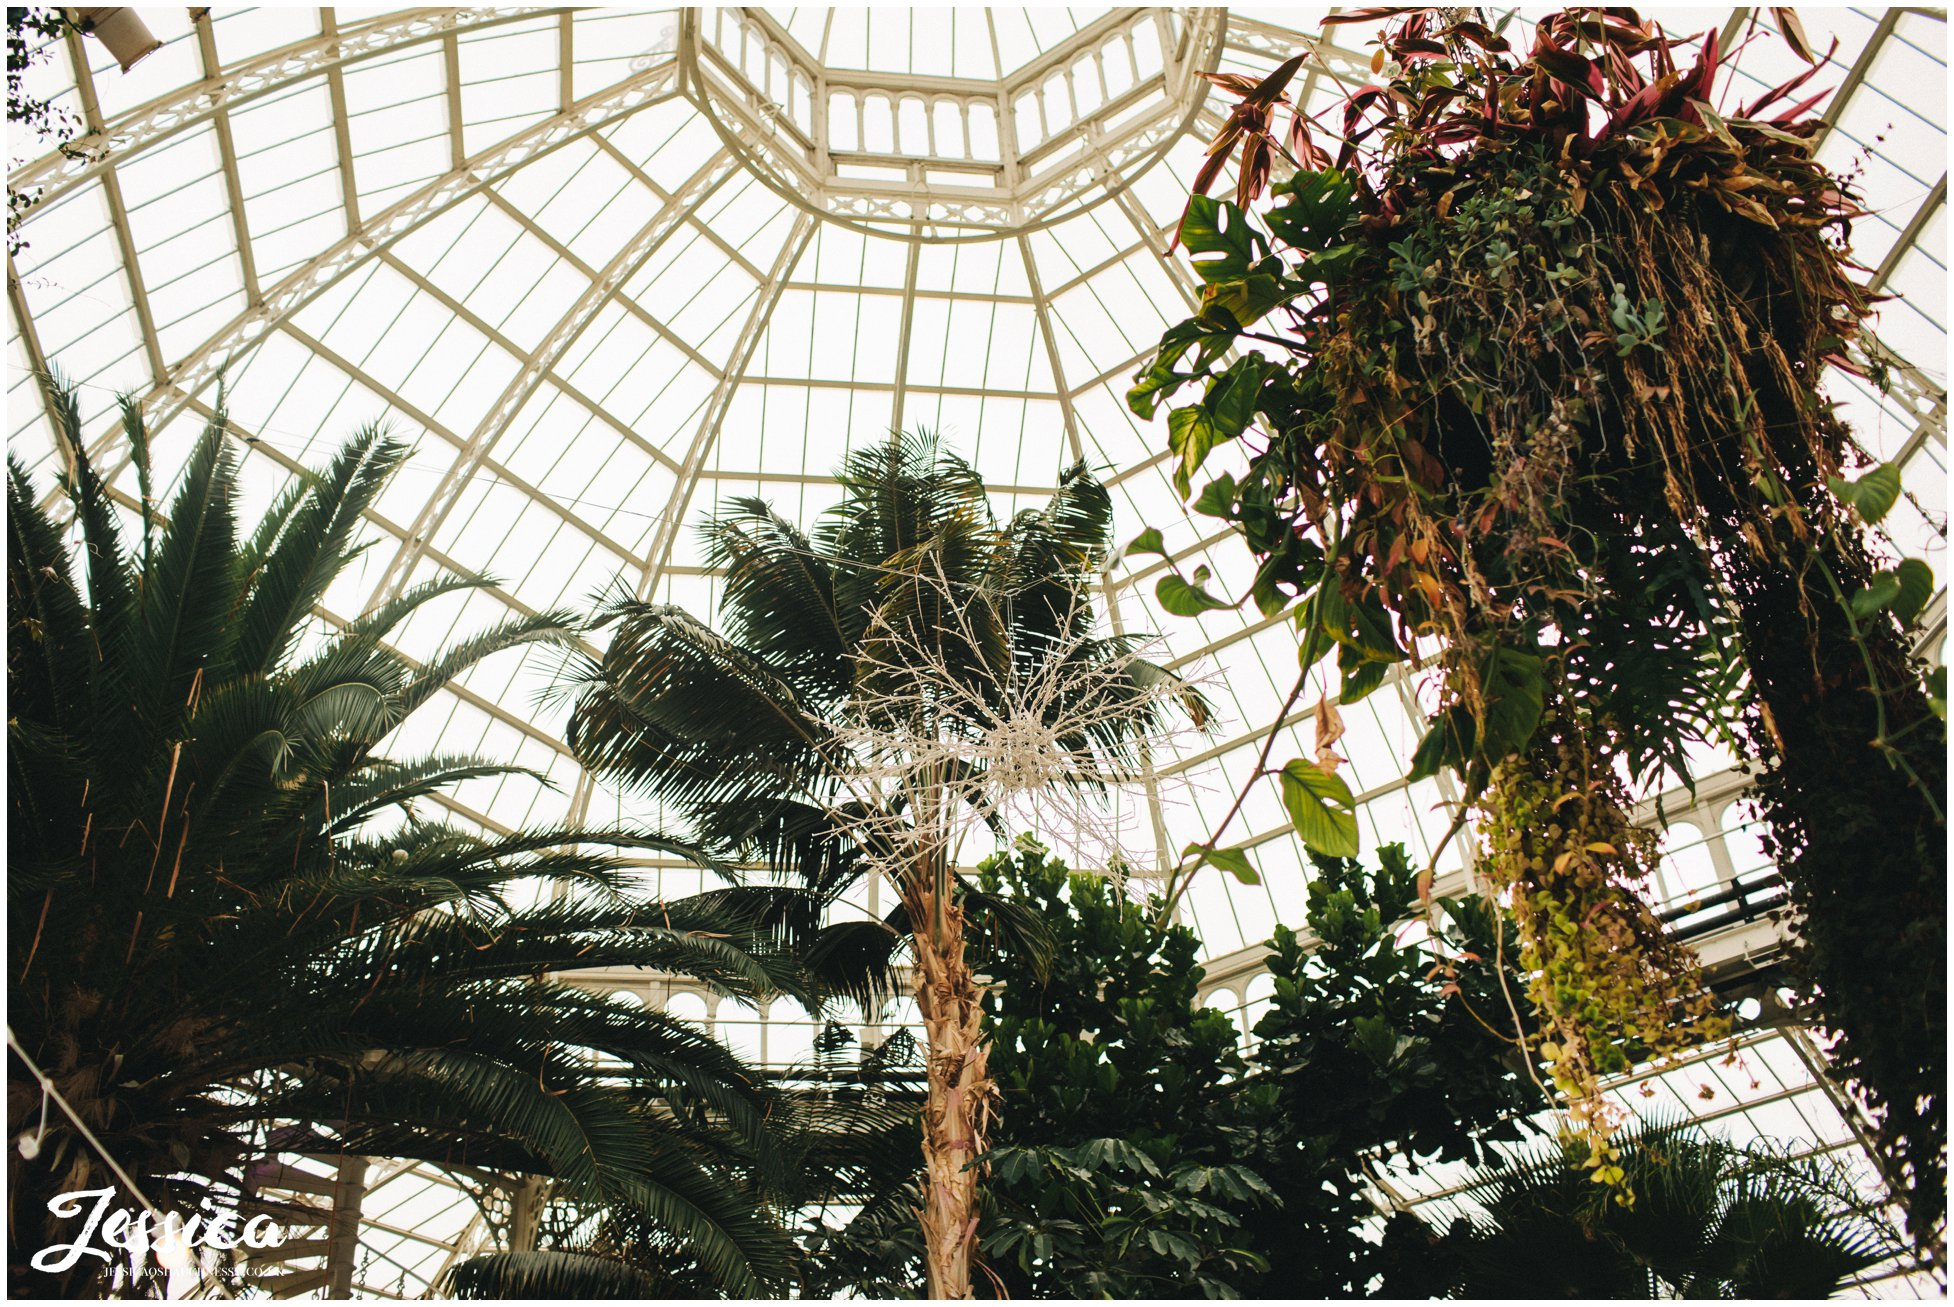 trees decorate sefton palm house in liverpool